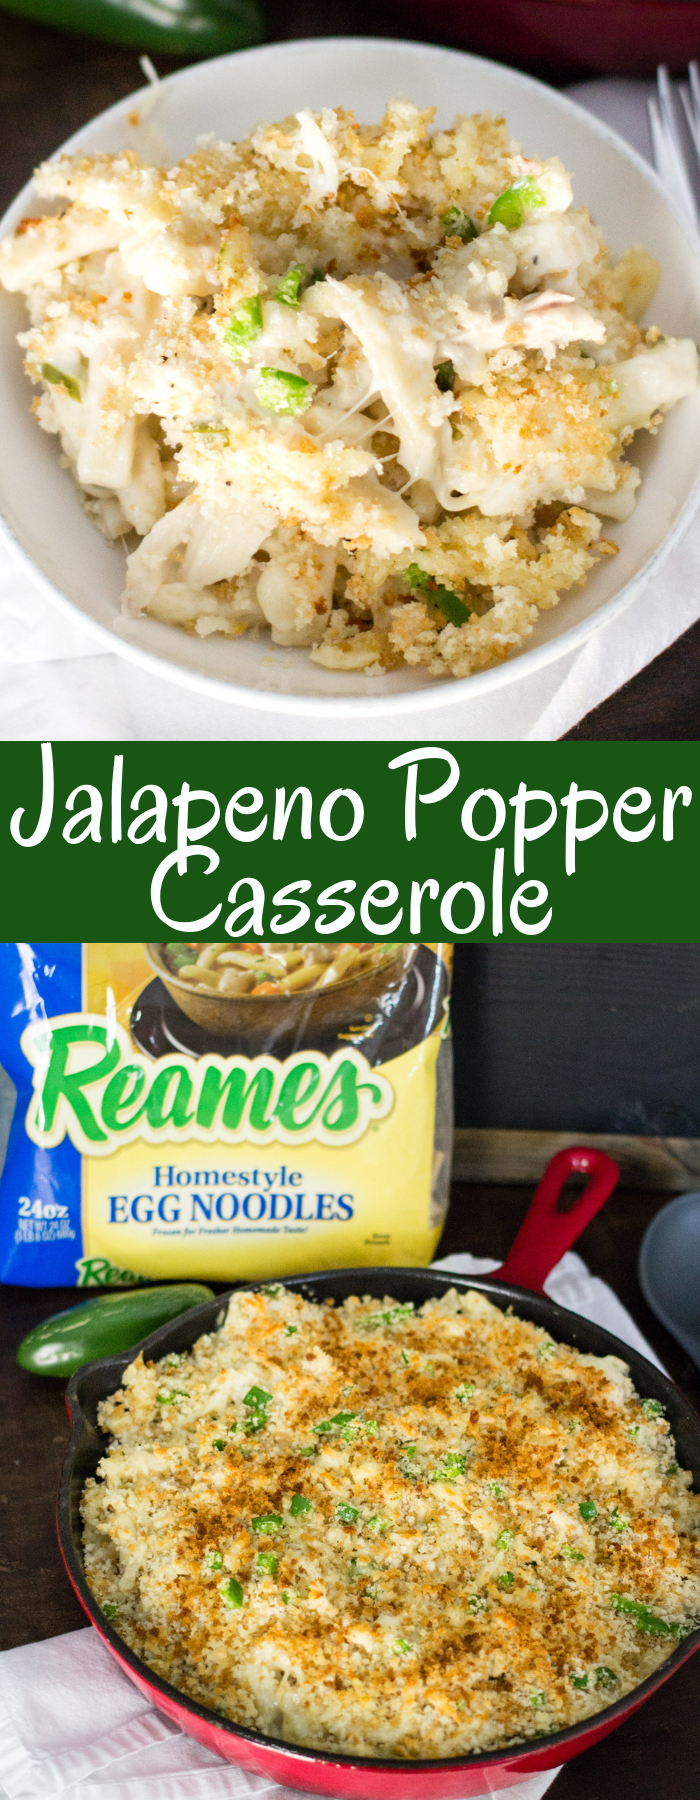 Jalapeno Popper Casserole is full of delicious Reames egg noodles, chicken, cheese, and jalapenos, then topped with a crunchy topping! This will be a family favorite for years to come!